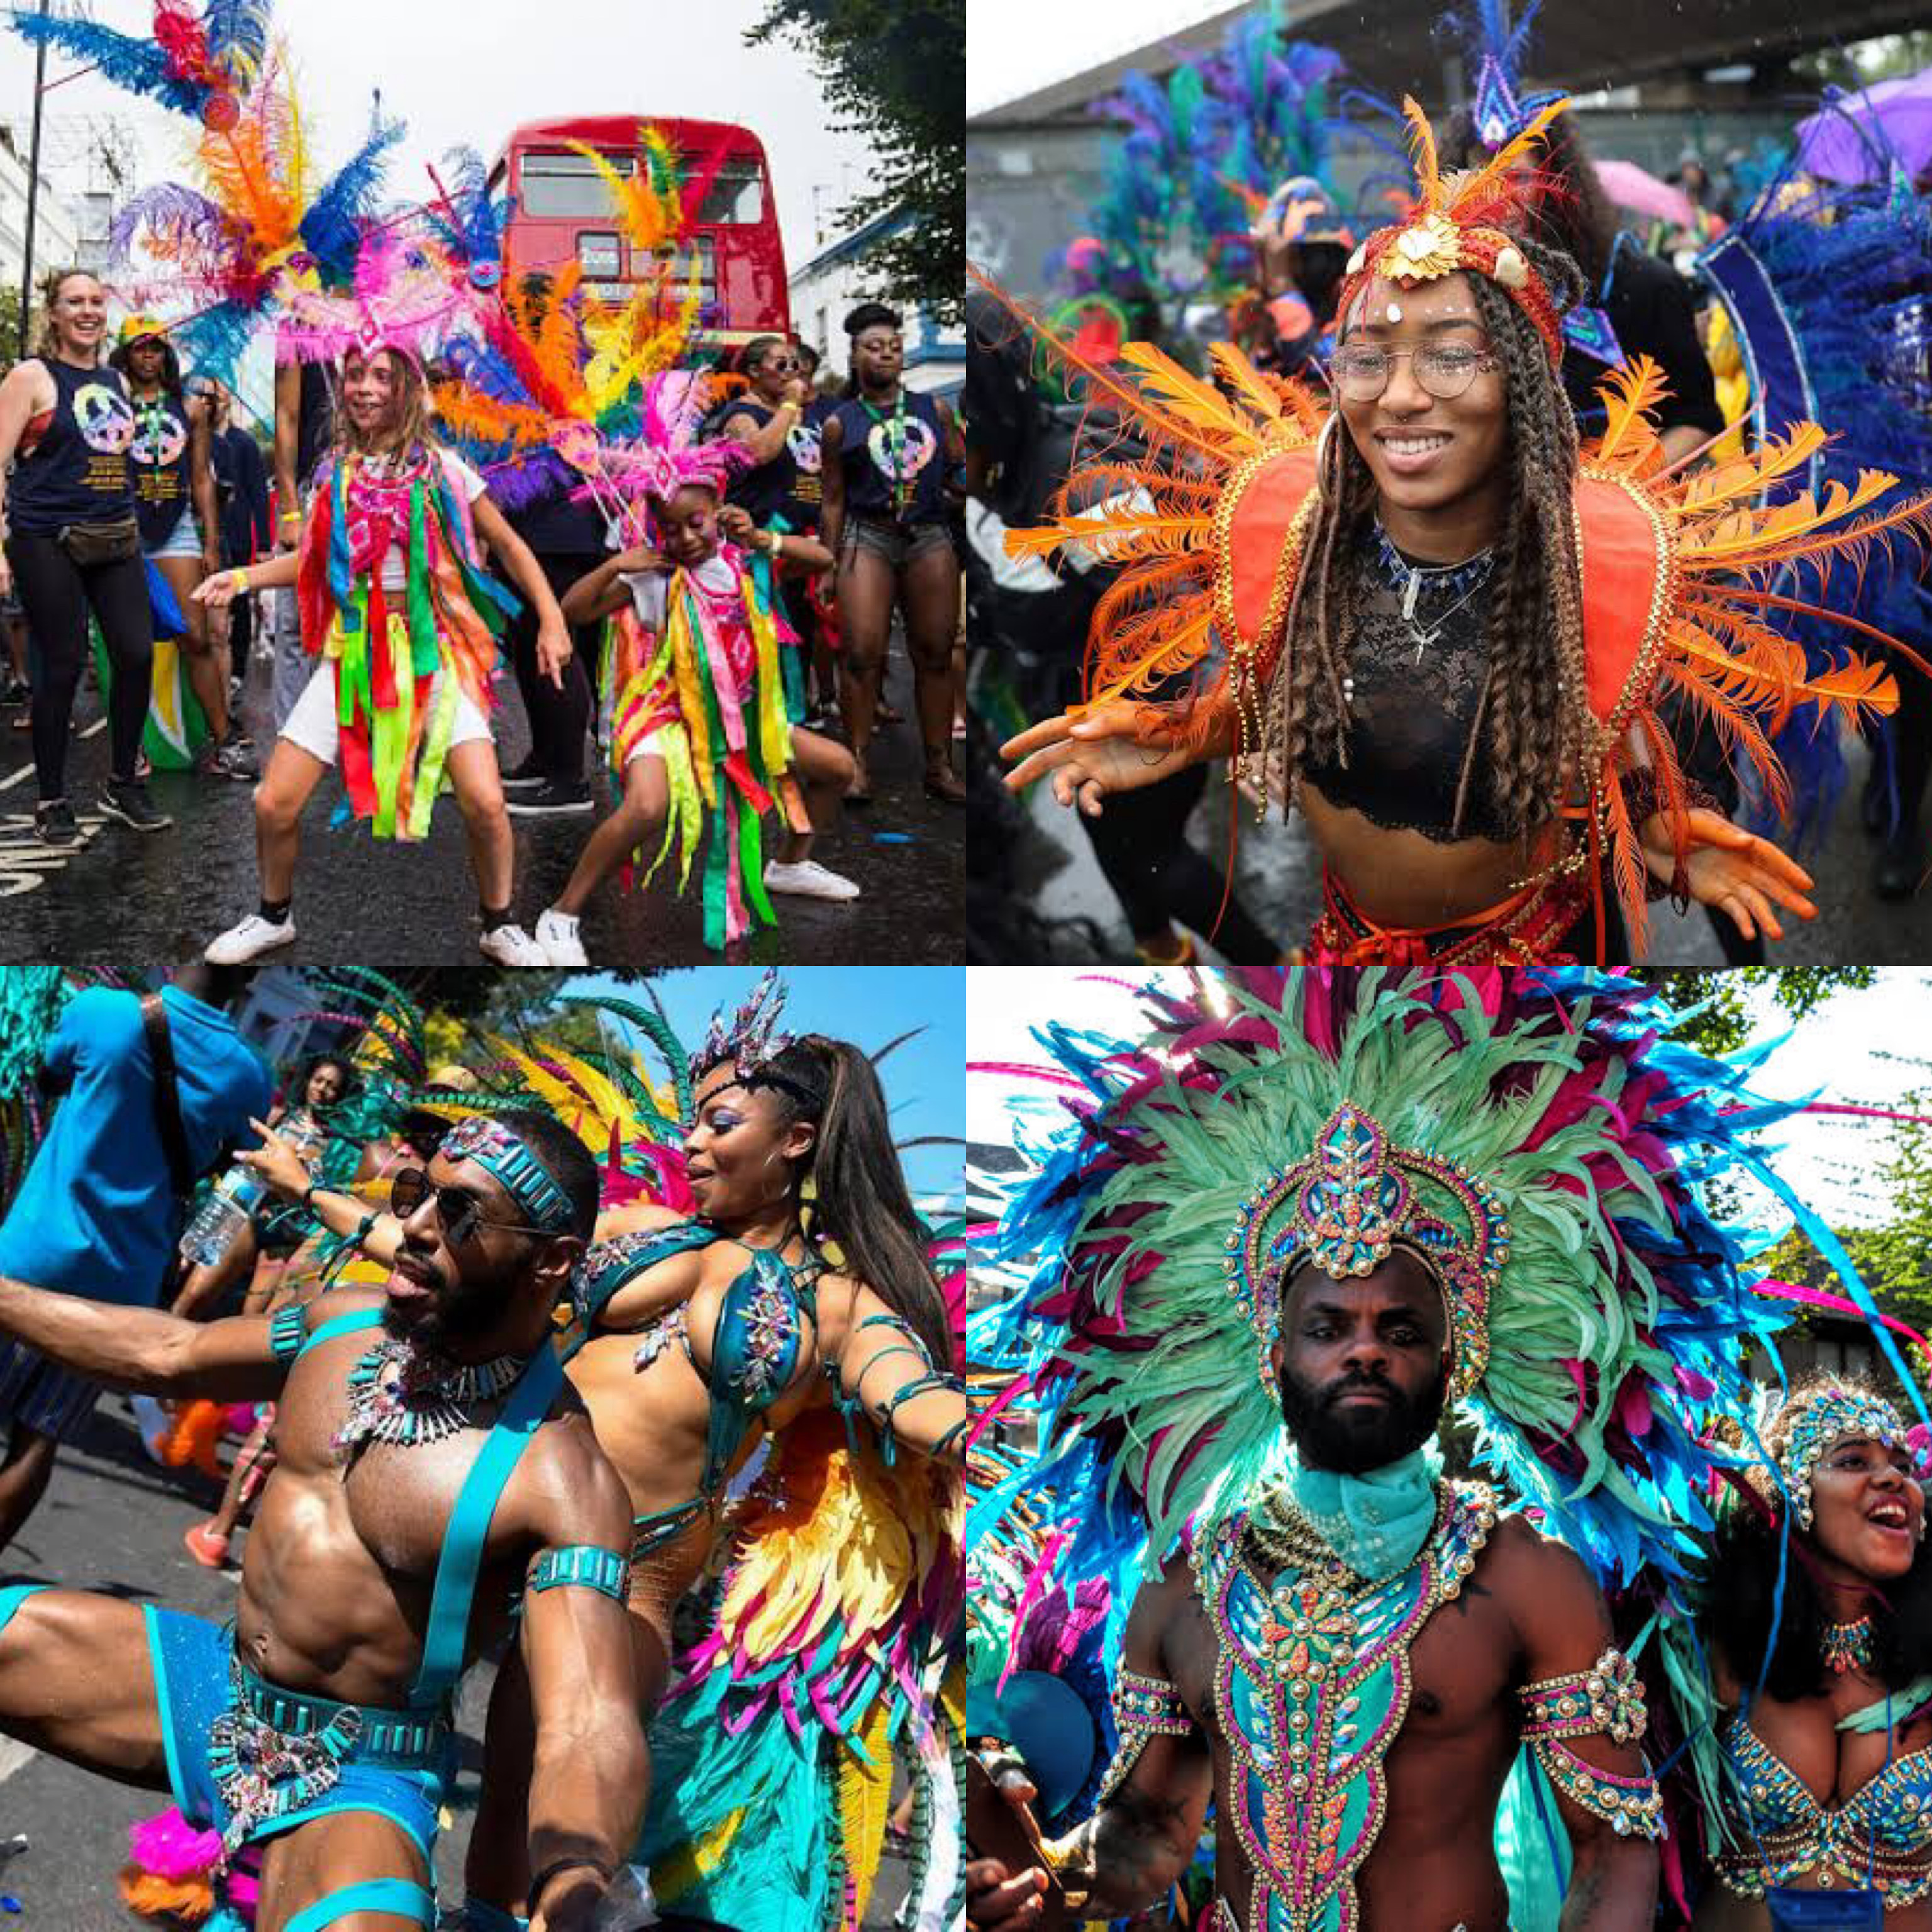 Notting hill carnival cancelled due to Coronavirus